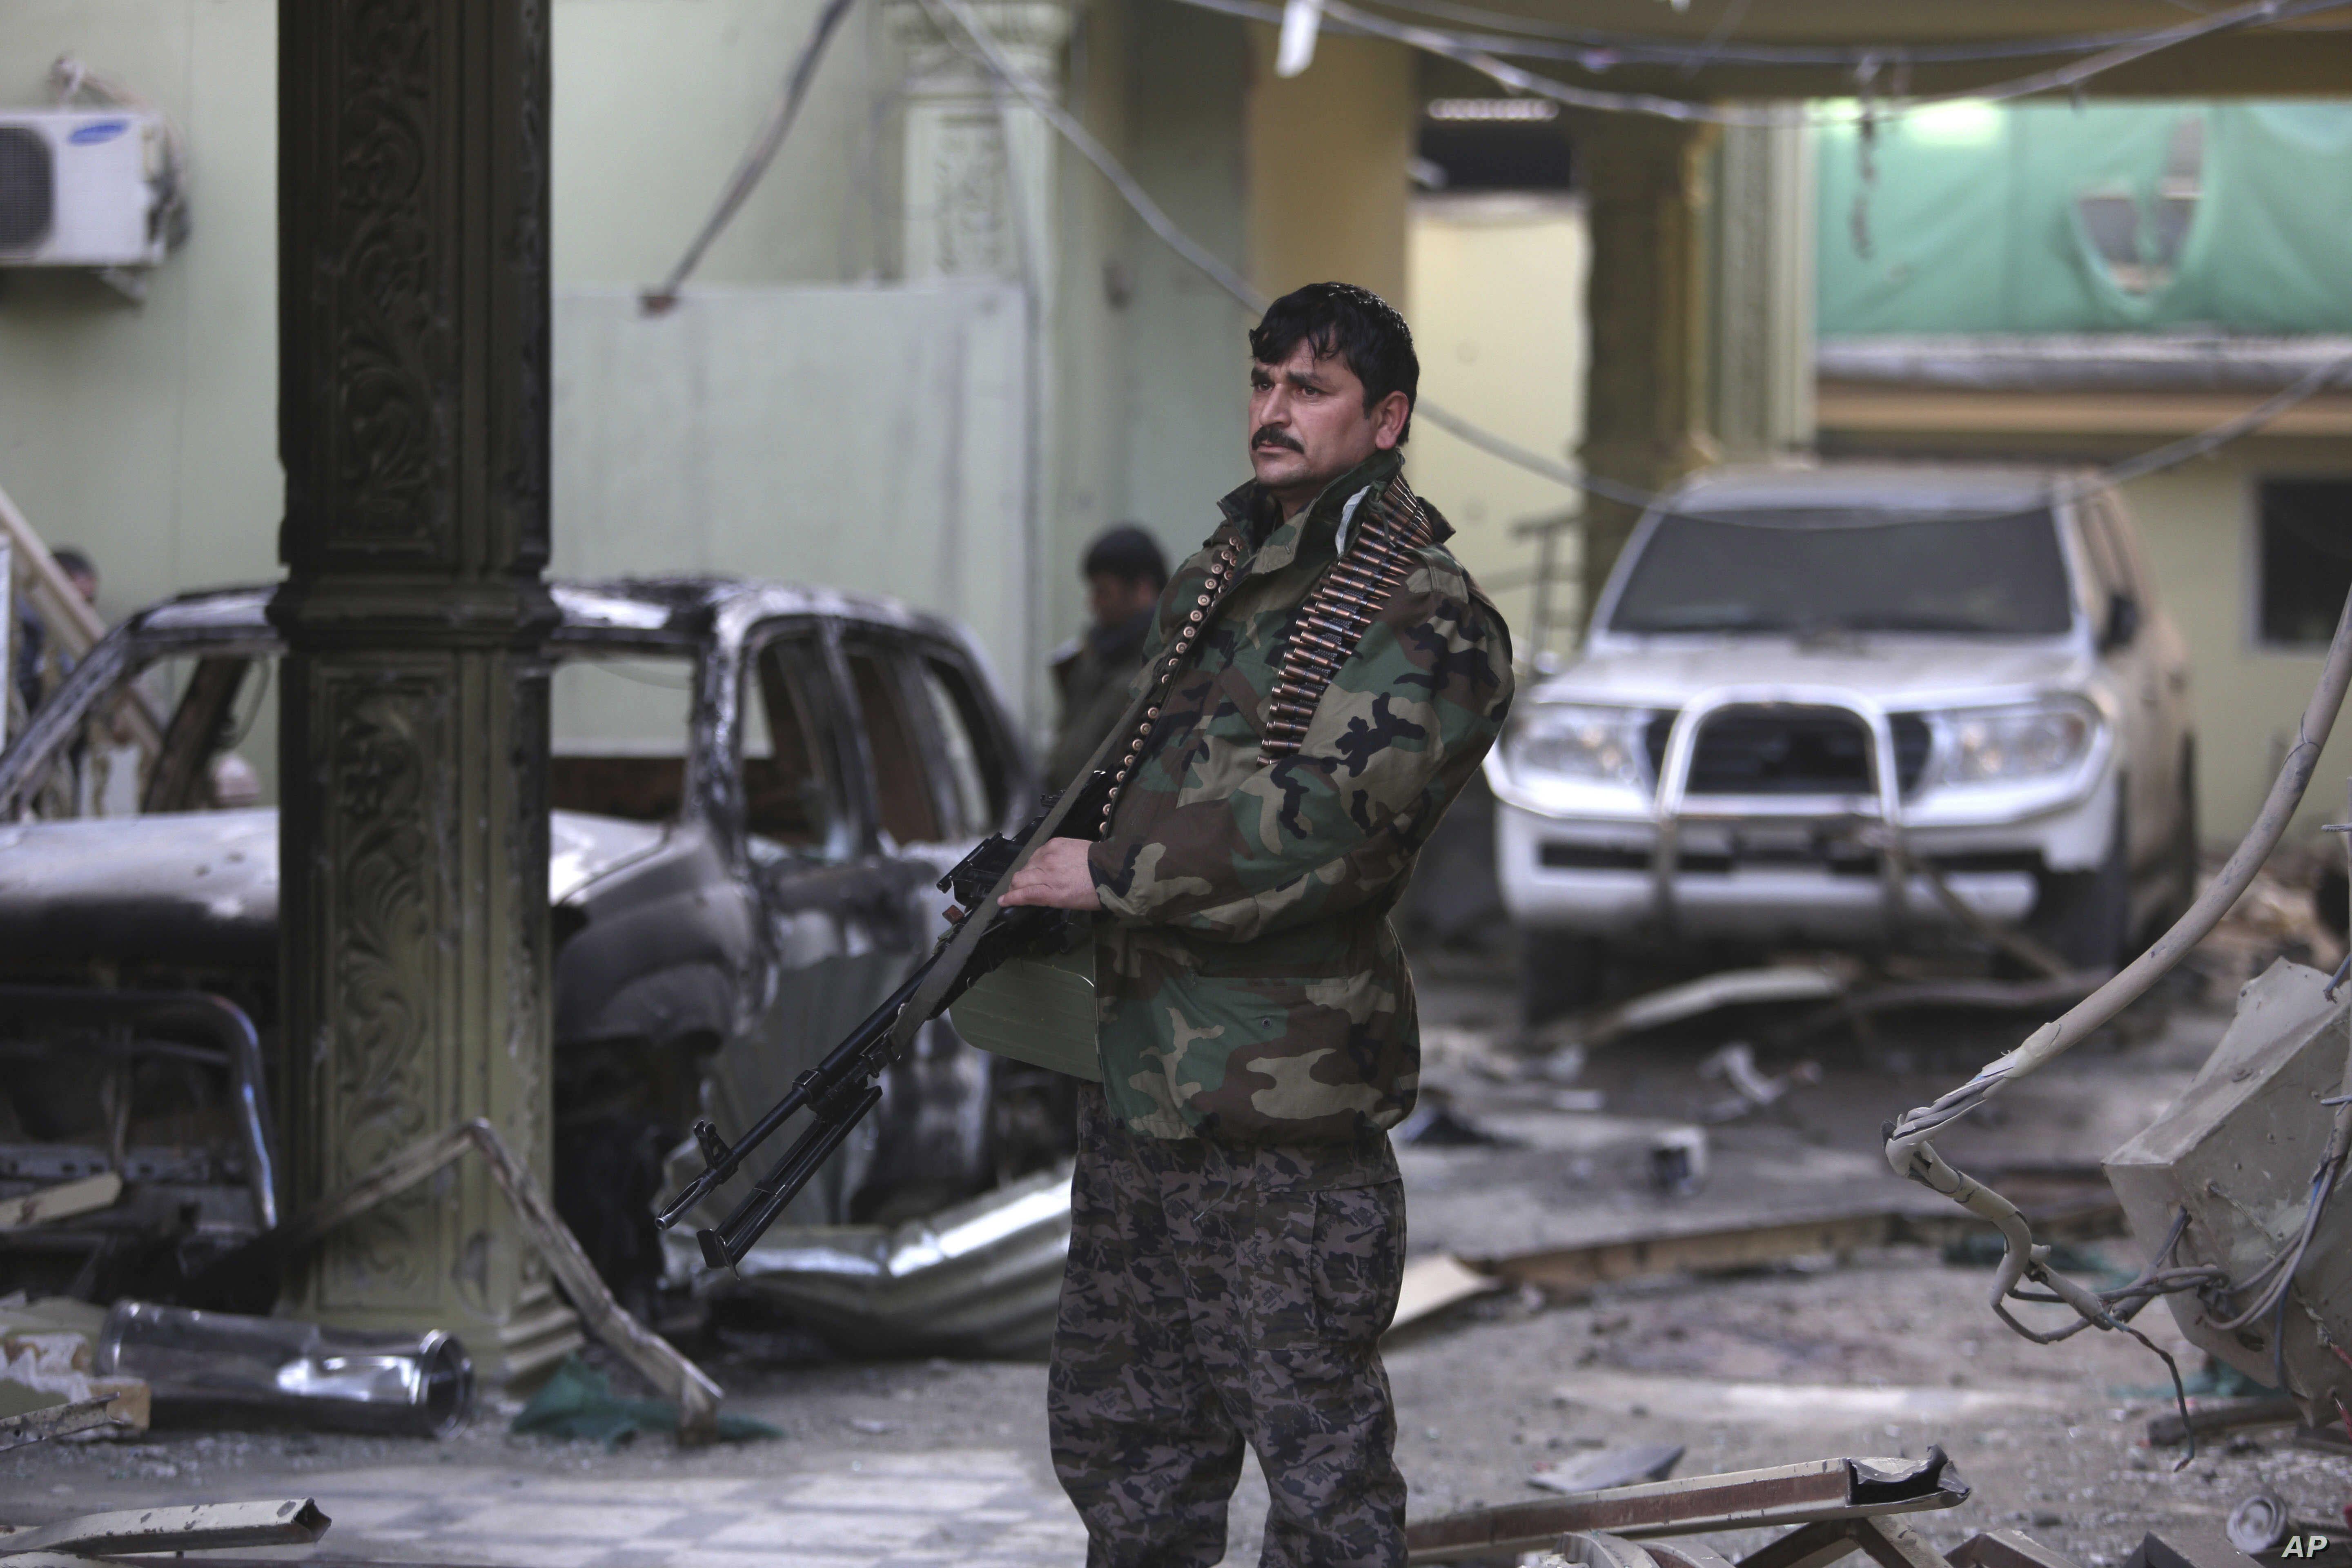 An Afghan security forces member stands guard at the Spanish Embassy after an attack in Kabul, Afghanistan, Dec. 12, 2015.